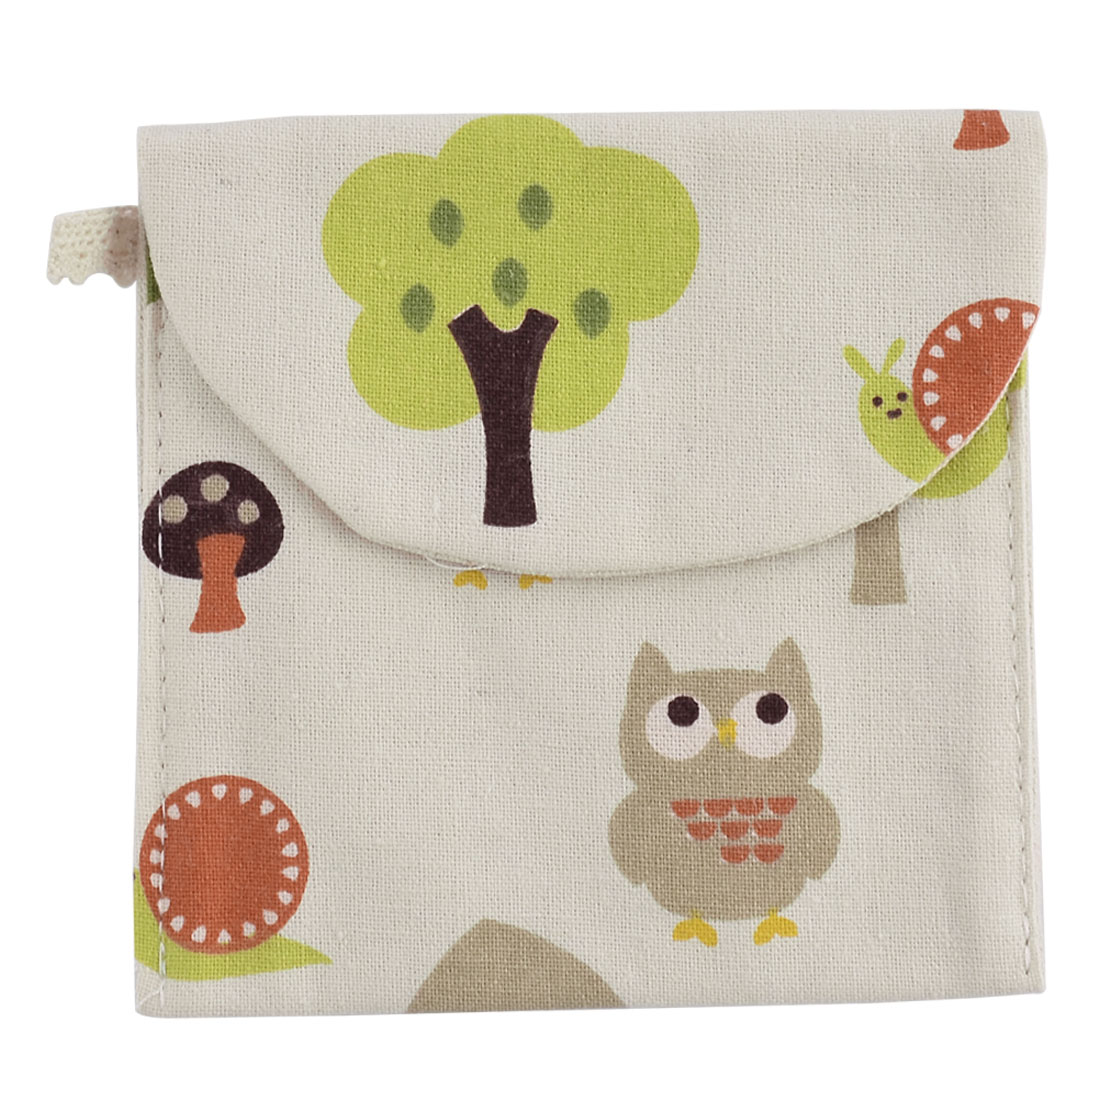 Linen Square Shape Tree Owl Snail Pattern Sanitary Towel Napkin Pad Bag